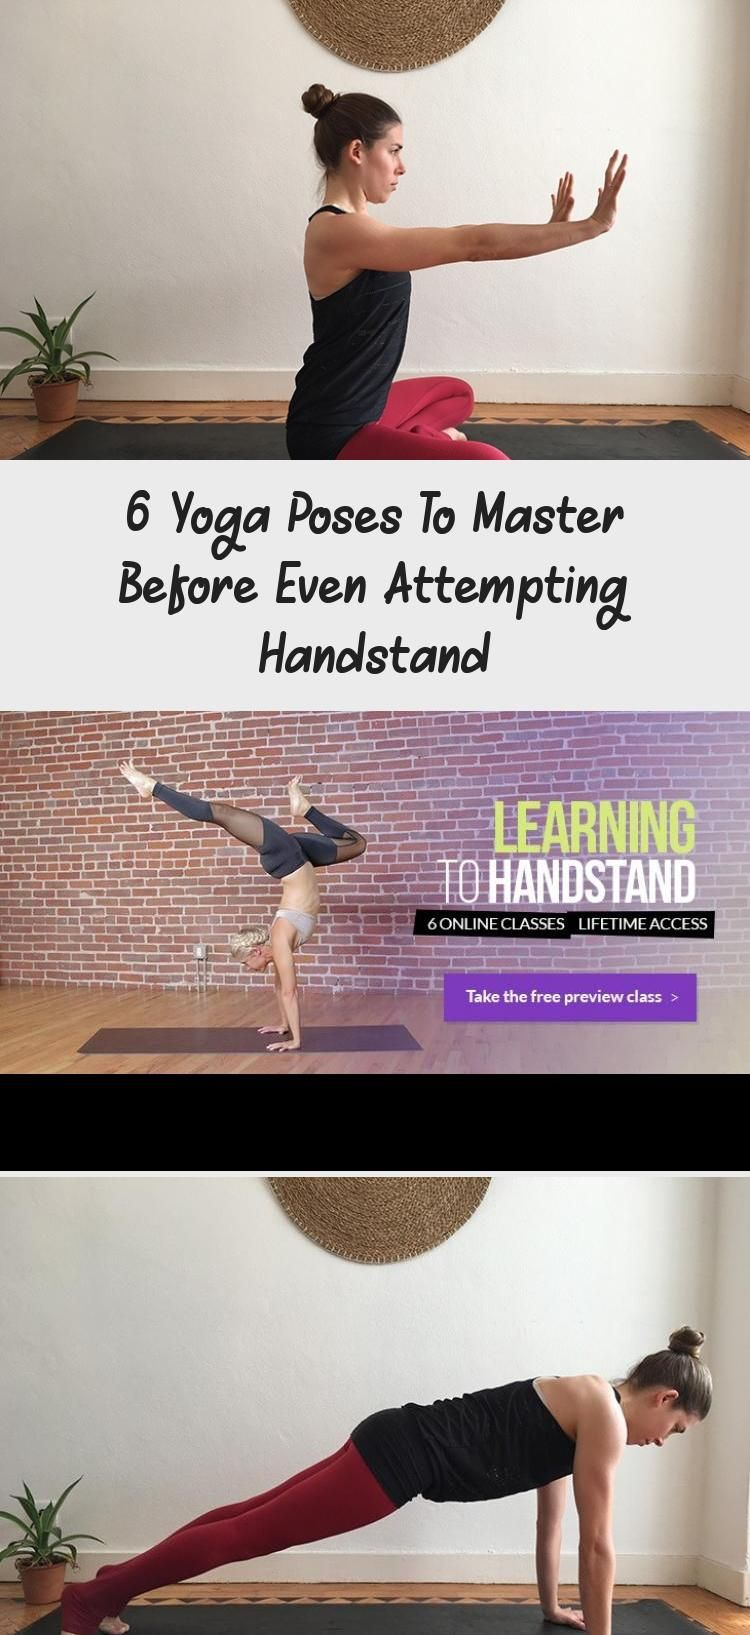 6 Yoga Poses to Master Before Even Attempting Handstand #workout #yoga #fitness #YogaDesign #YogaArt...